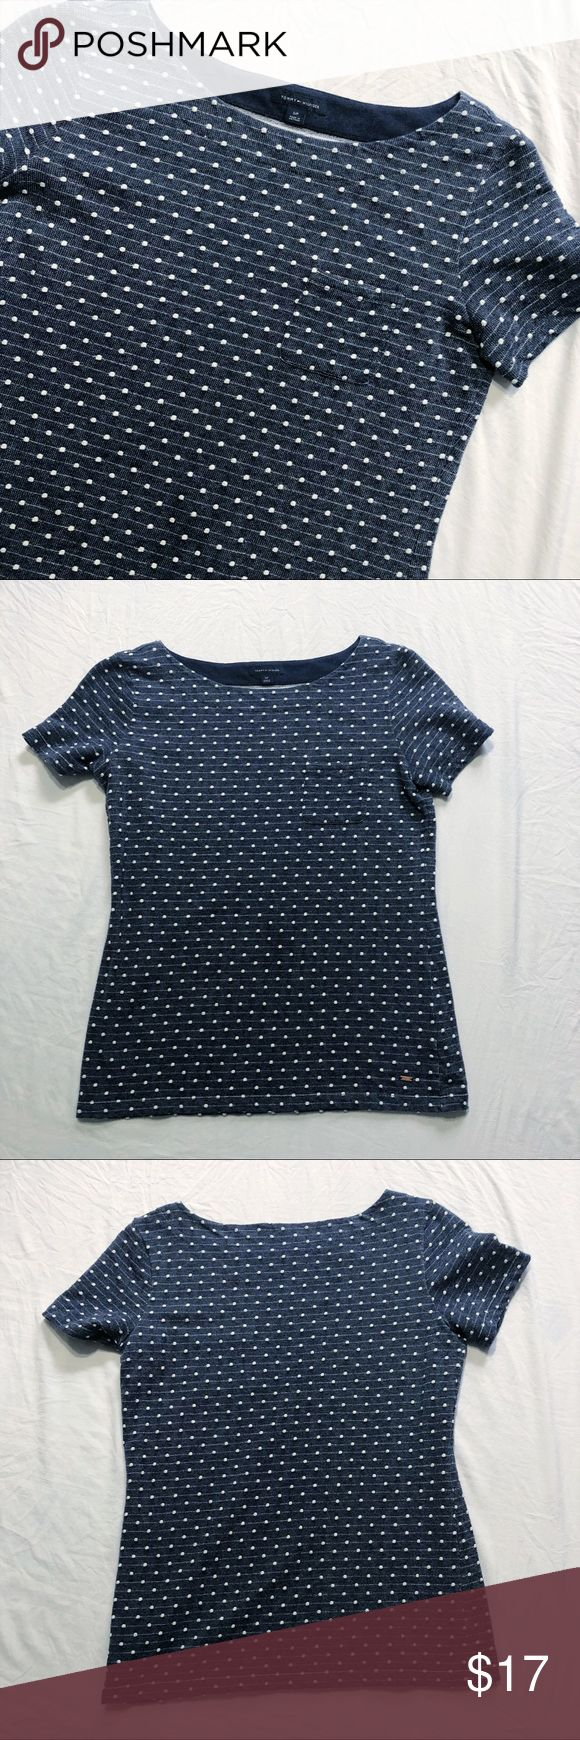 """TH Tommy Hilfiger Polka Dot Short Sleeved Blouse Tommy Hilfiger Polka Dot Navy Short Sleeved Blouse. Perfect for spring! Size S. Excellent used condition. 78% Cotton, 22% Polyester. Approximate measurements are included in photos and are as follows: Chest: 18.5"""" & Length: 24.5"""" Tommy Hilfiger Tops Tees - Short Sleeve"""